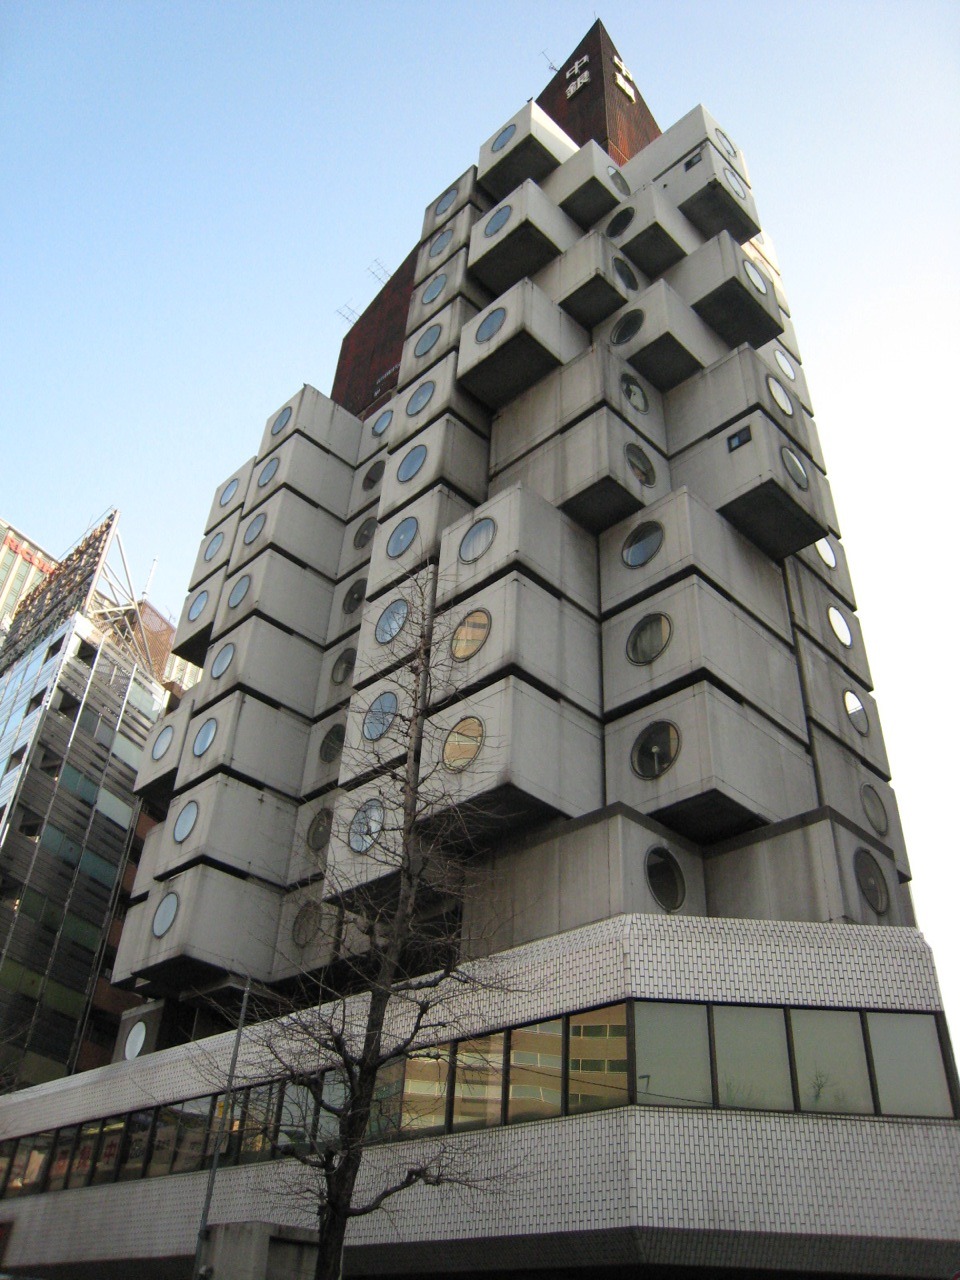 Kisho Kurokawa's Nakagin Capsule Tower